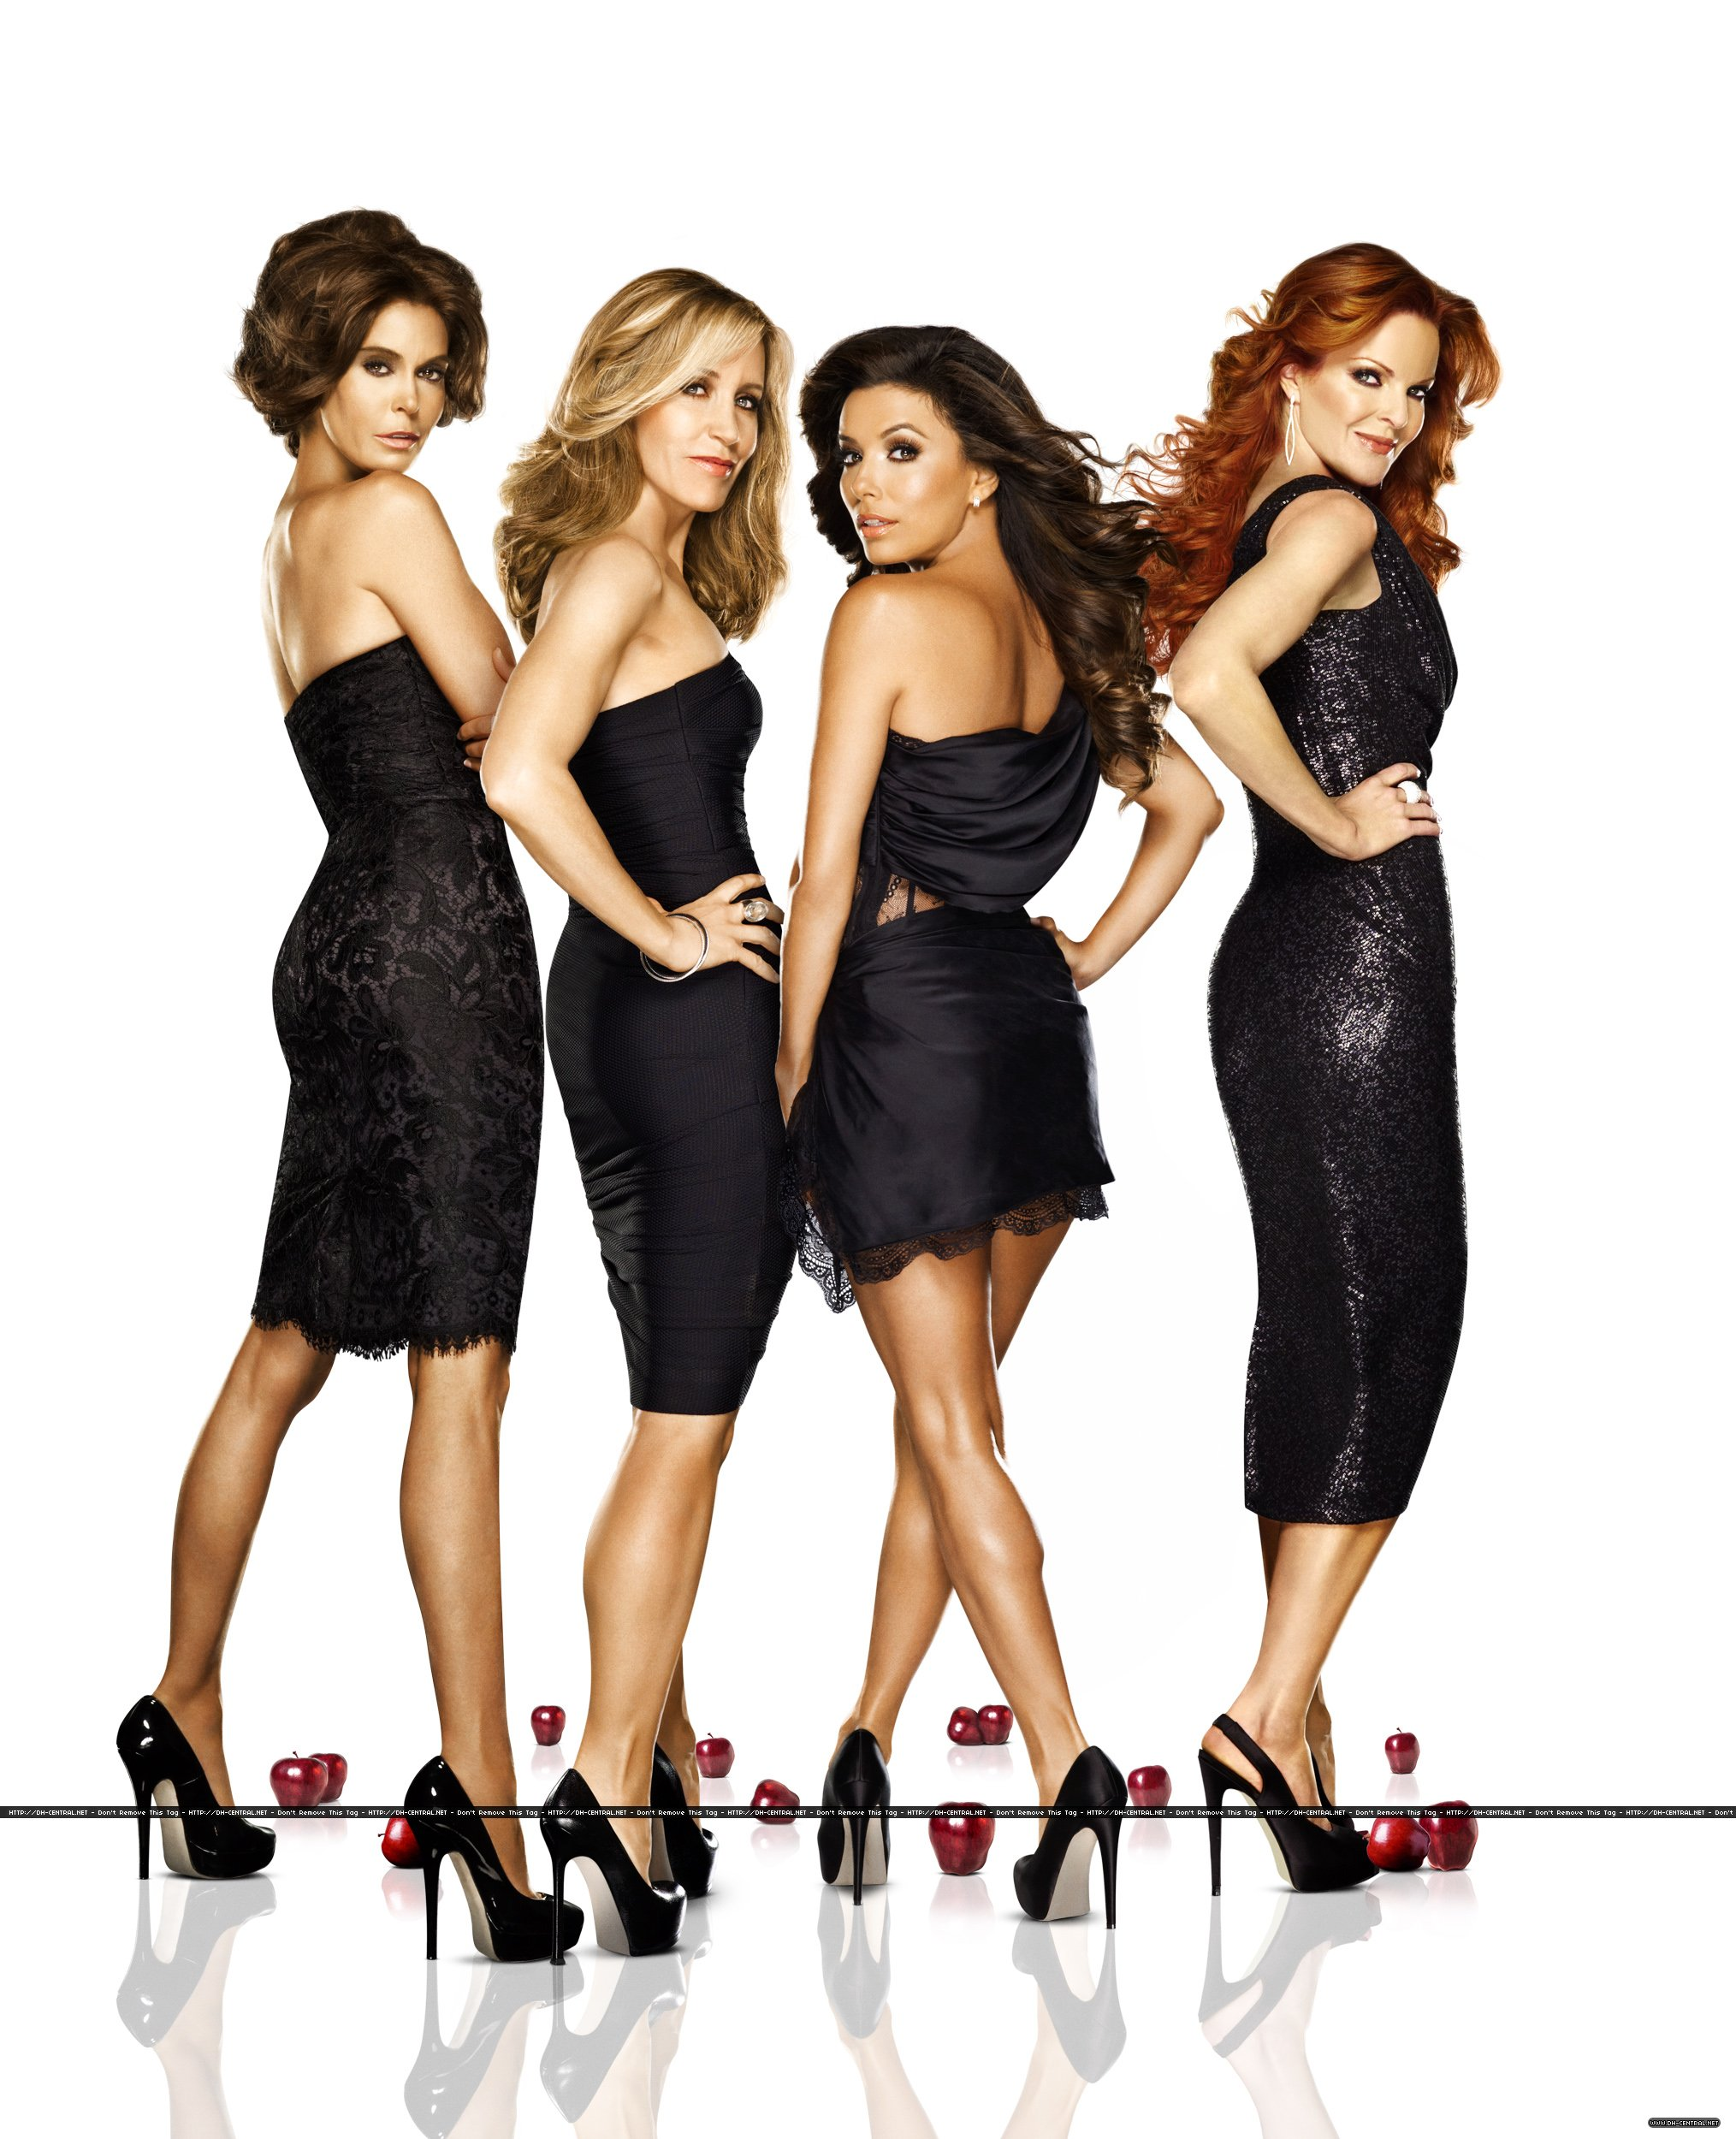 Desperate housewives season 8 promo photoshoot